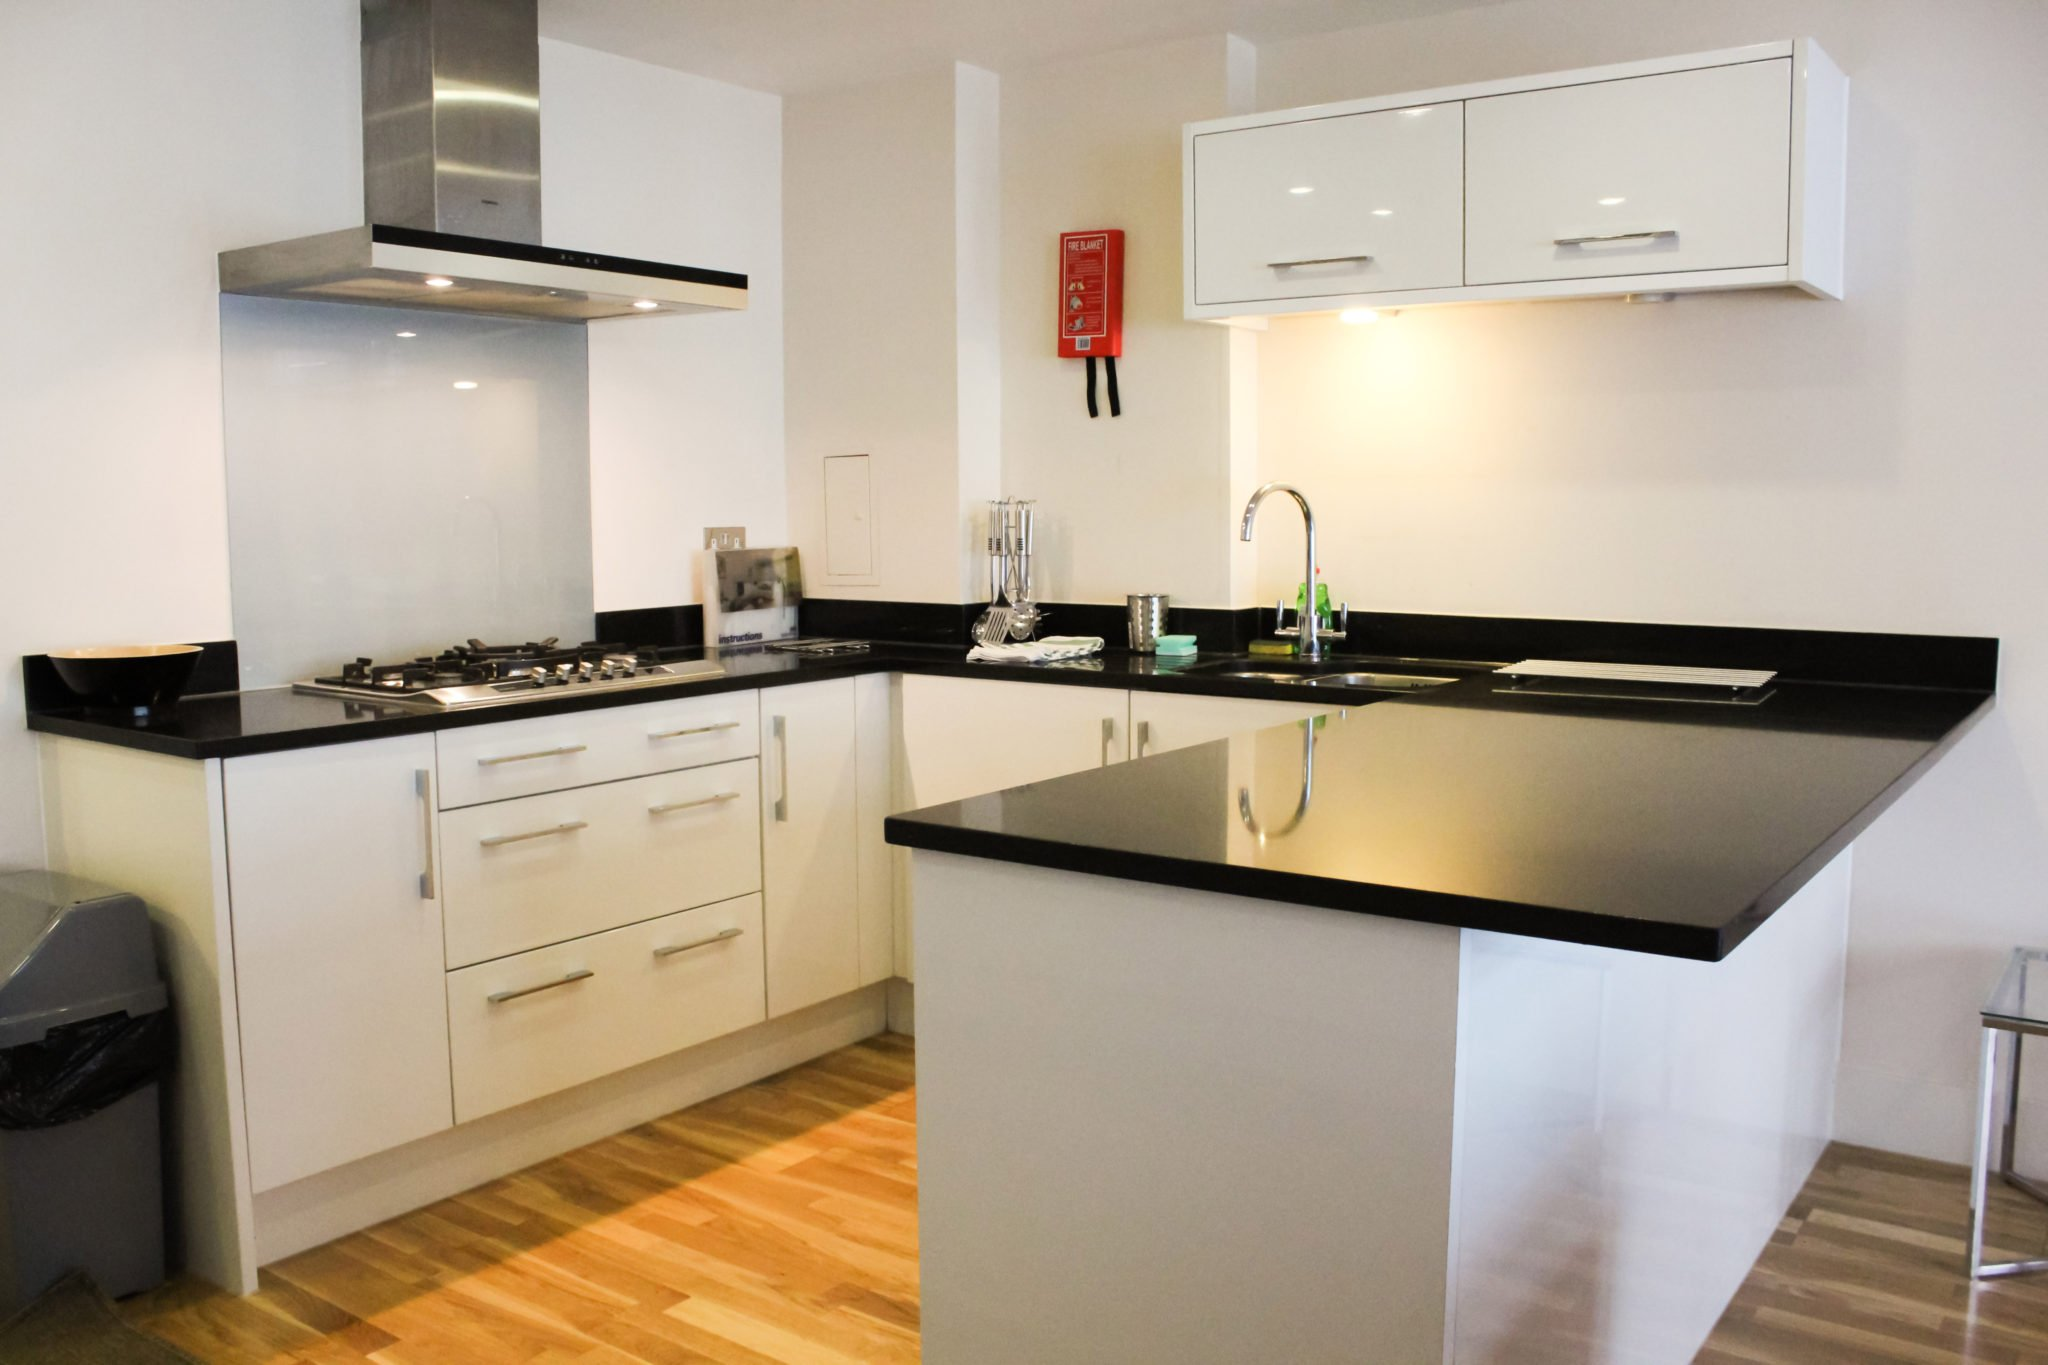 Modern-Short-Let-Apartments---Serviced-Apartments-Victoria---Book-your-accommodation-with-Urban-Stay-today!-Free-Wifi---Off-road-secure-parking